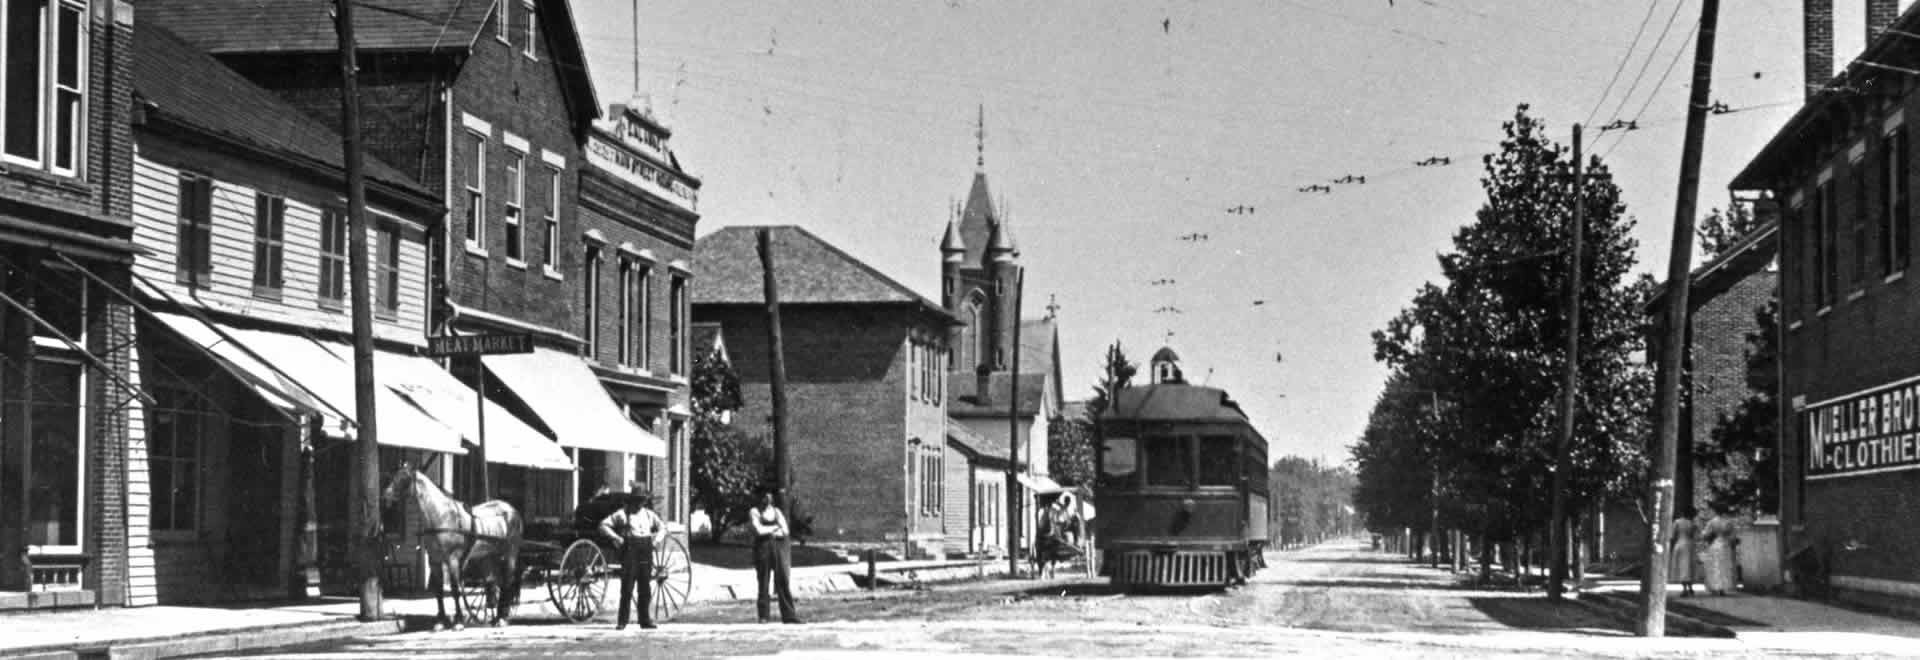 Main Street New Bremen Ohio - 1902